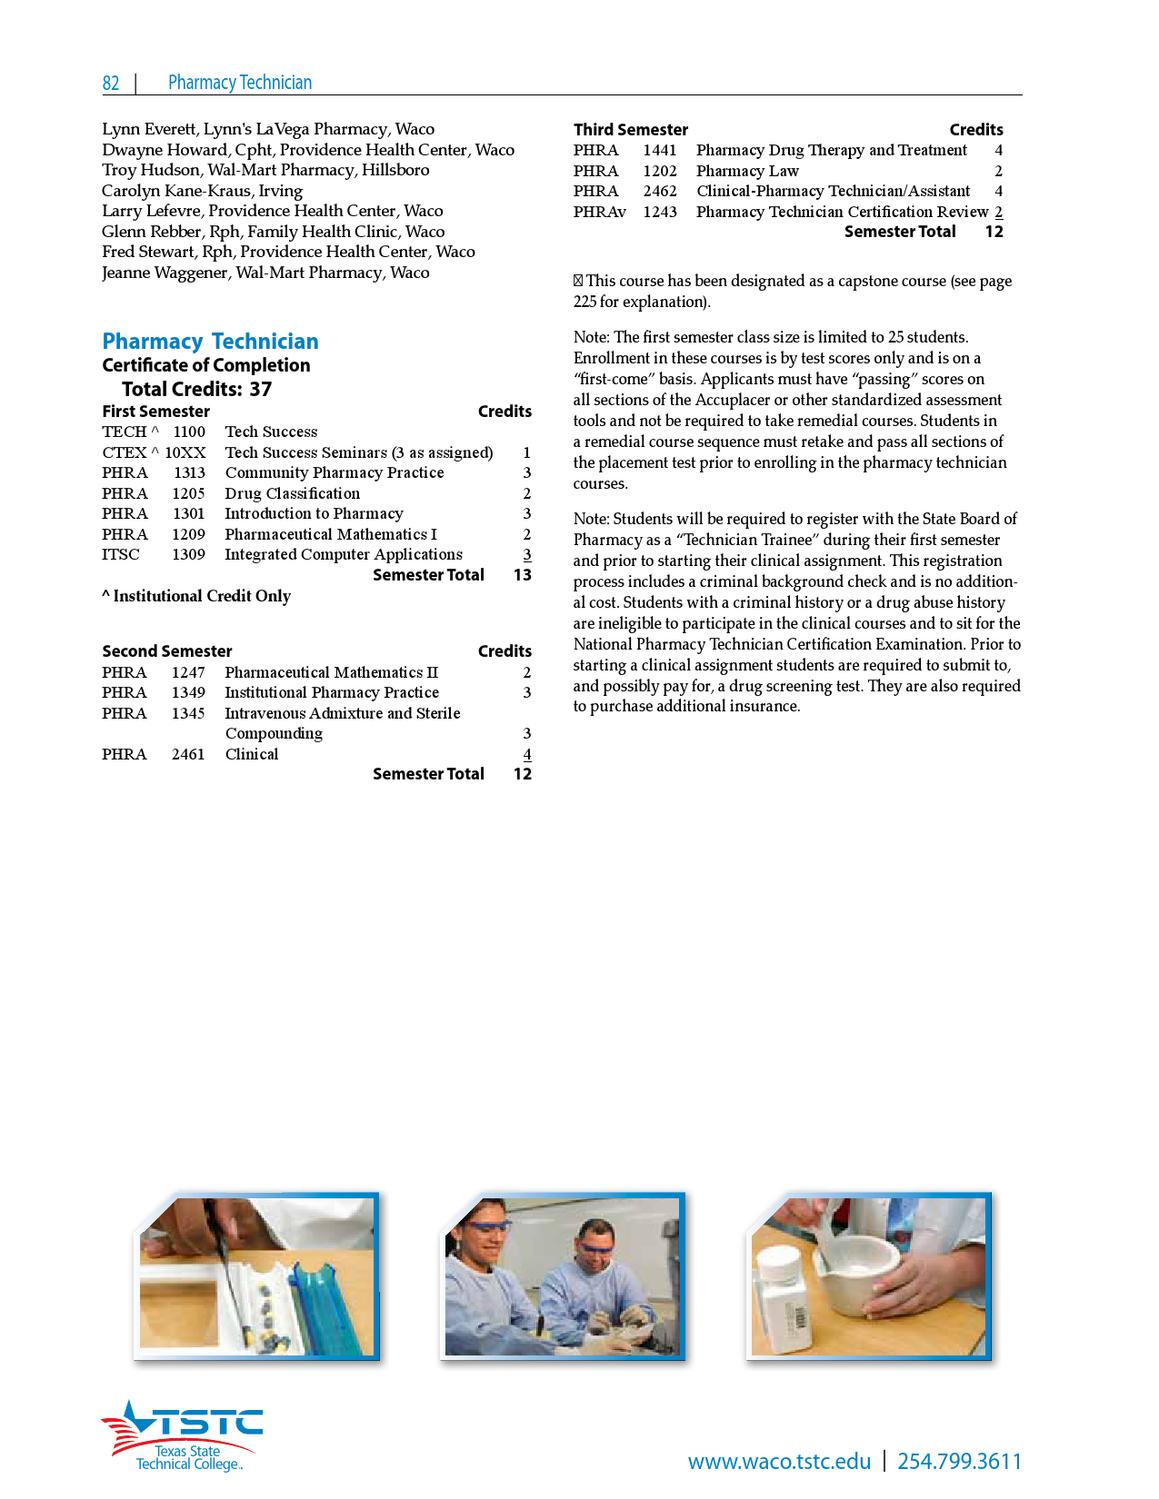 TSTC Waco Catalog Instructional Programs 082312 by Texas State